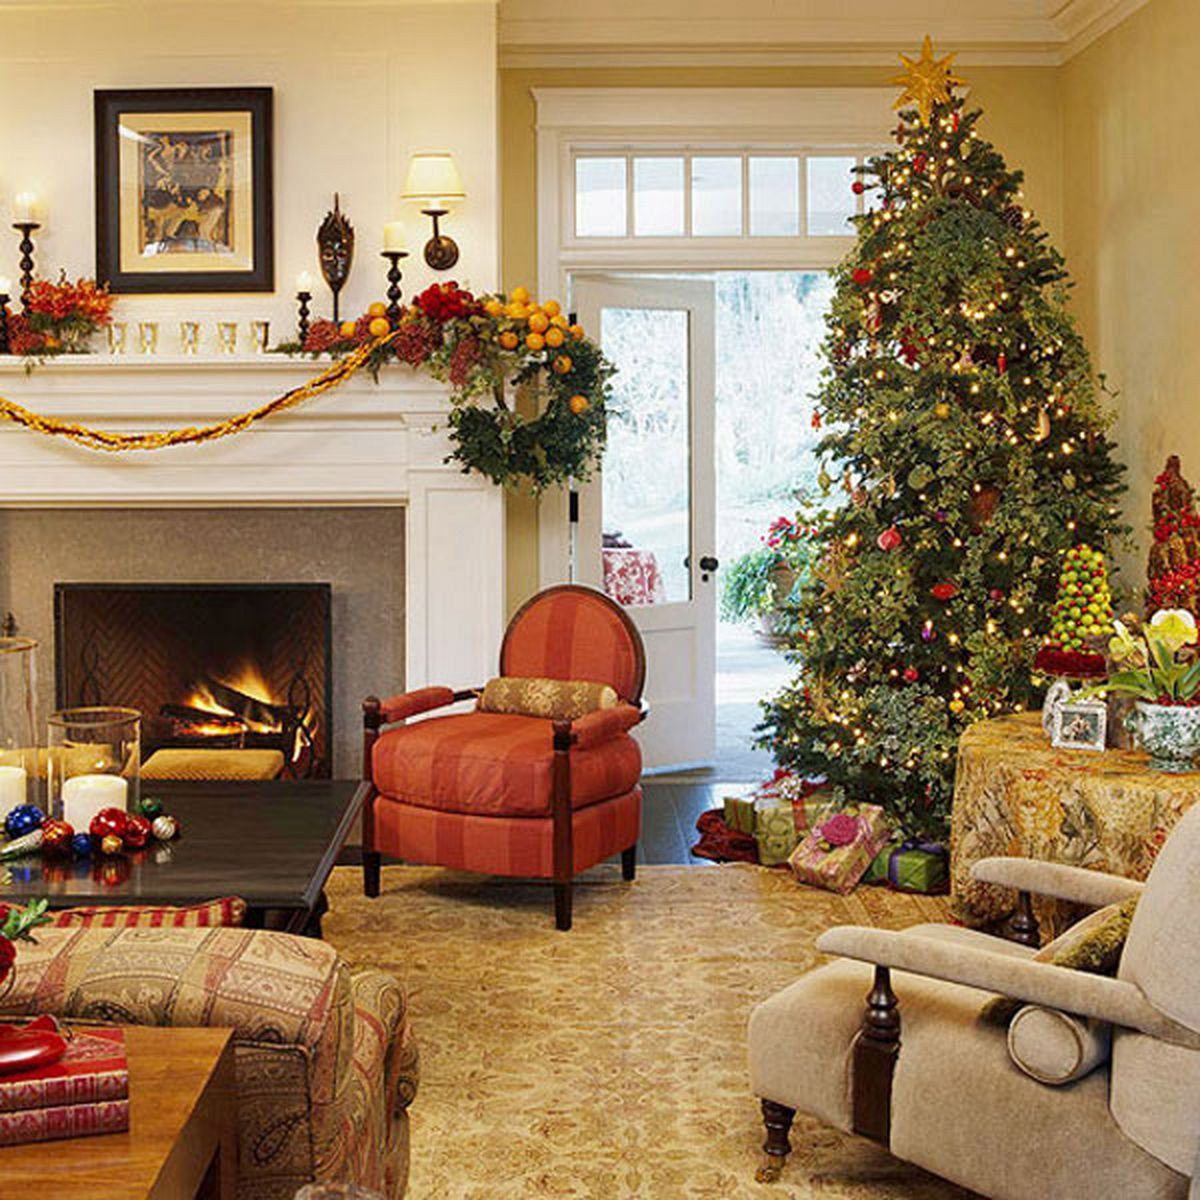 Christmas Decor Living Room  Magical Christmas living room ideas